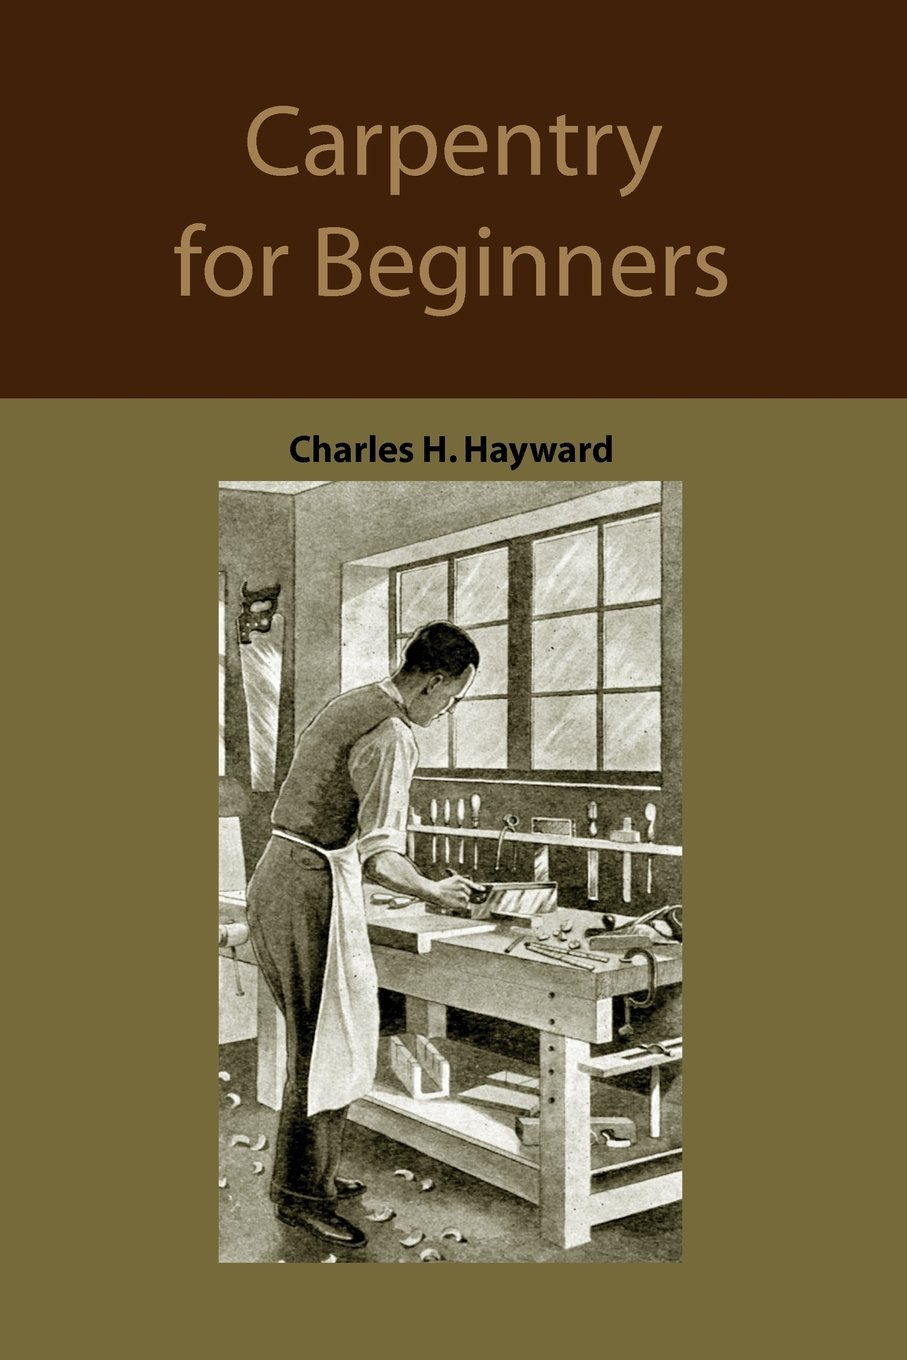 Carpentry for beginners: how to use tools, basic joints, workshop ...